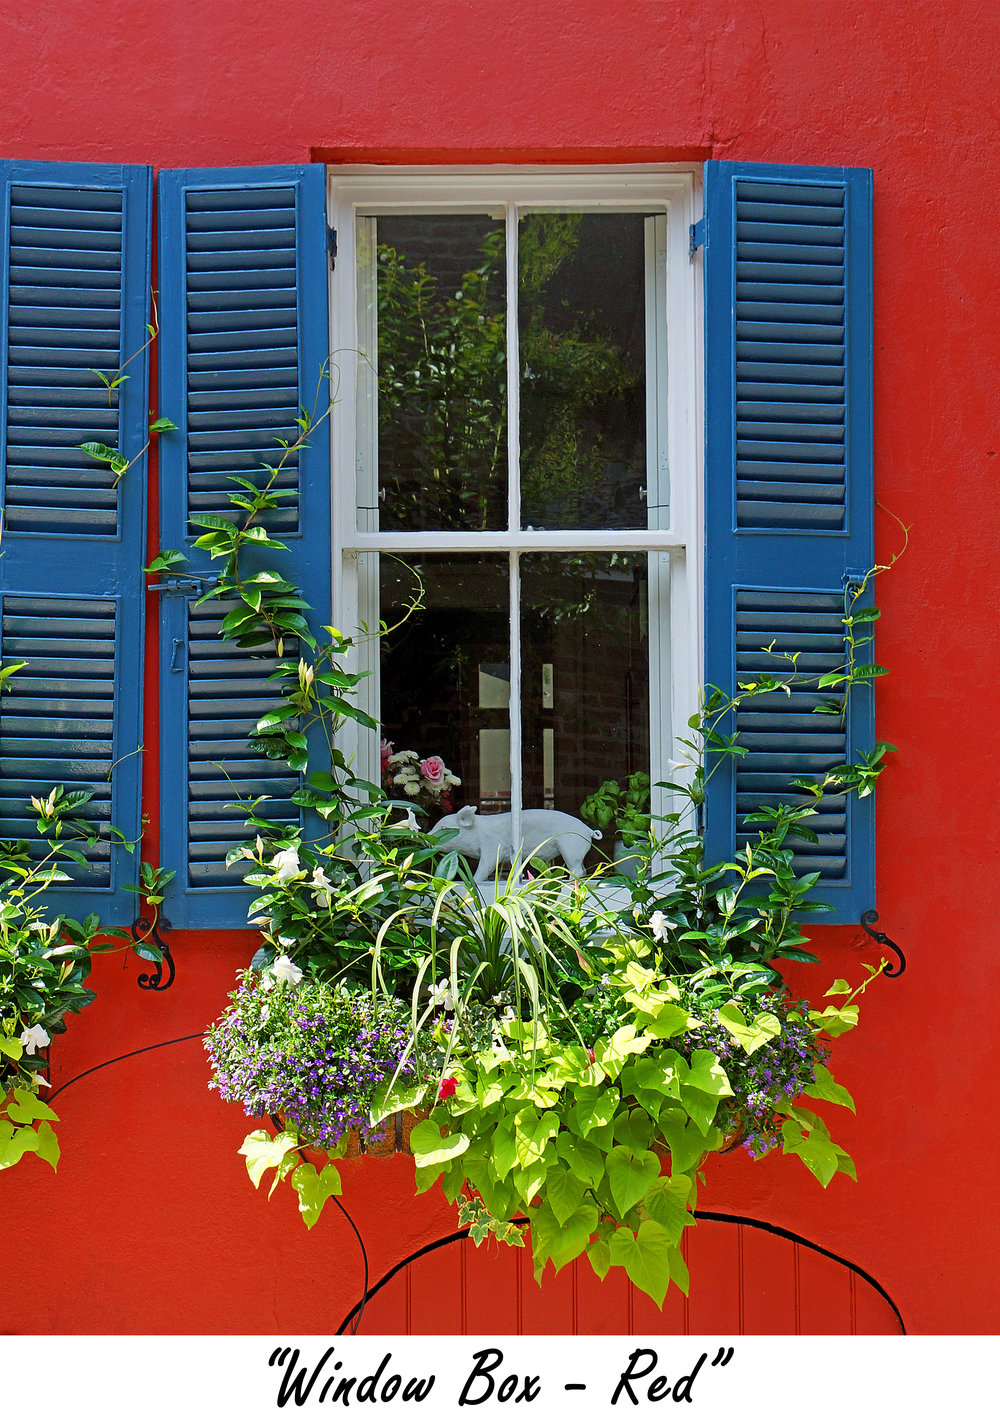 windowbox Red.jpg